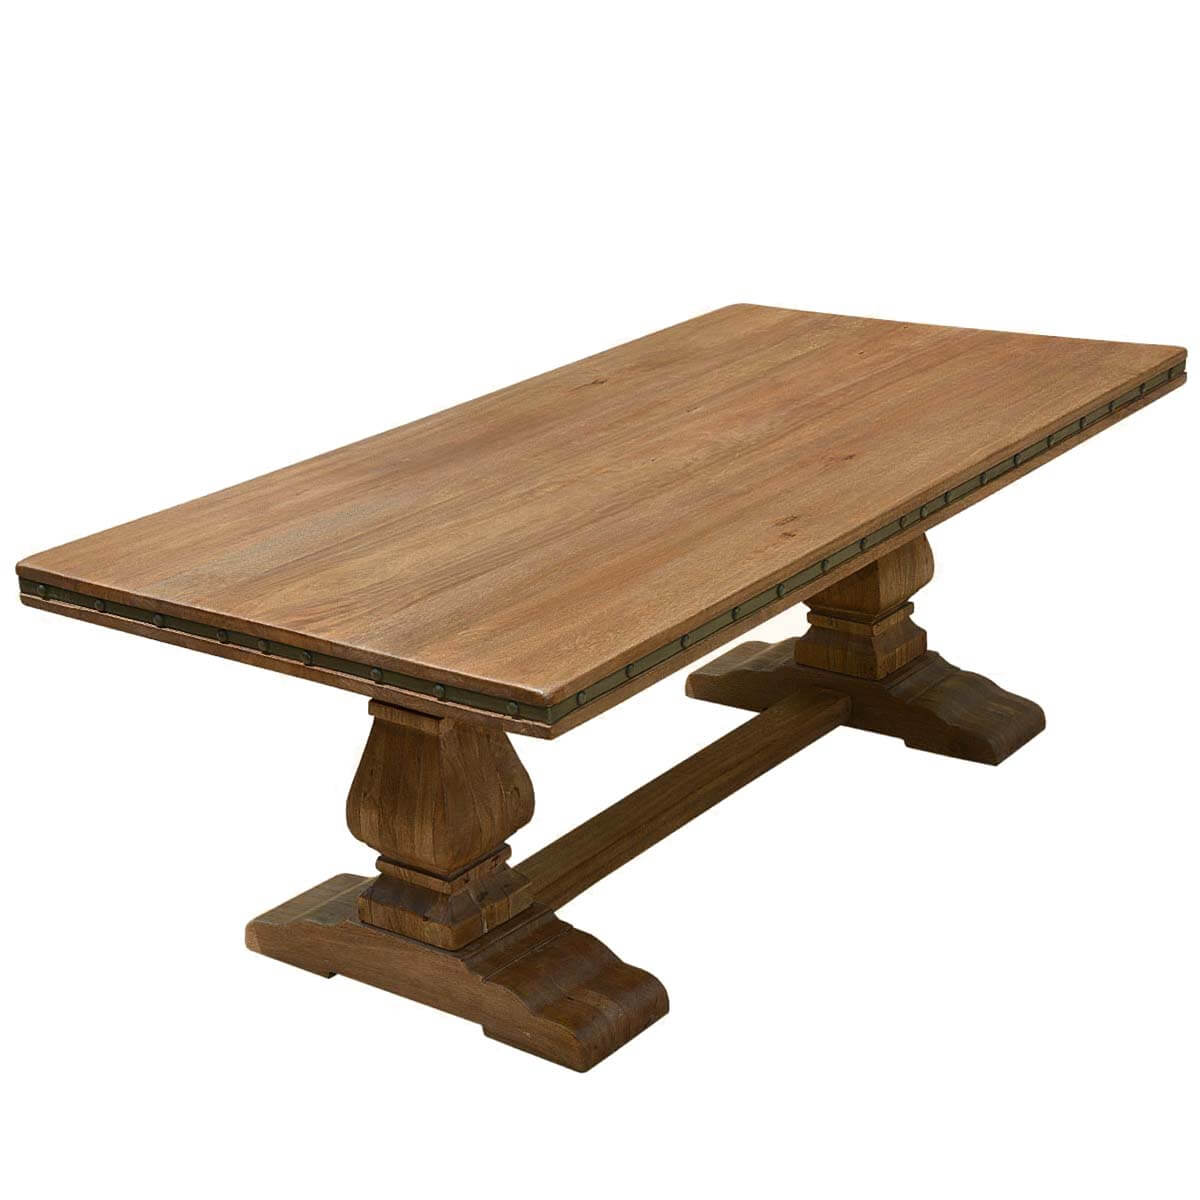 Rustic Solid Wood Trestle Pedestal Base Harvest Dining Table : 5217 from www.sierralivingconcepts.com size 1200 x 1200 jpeg 91kB